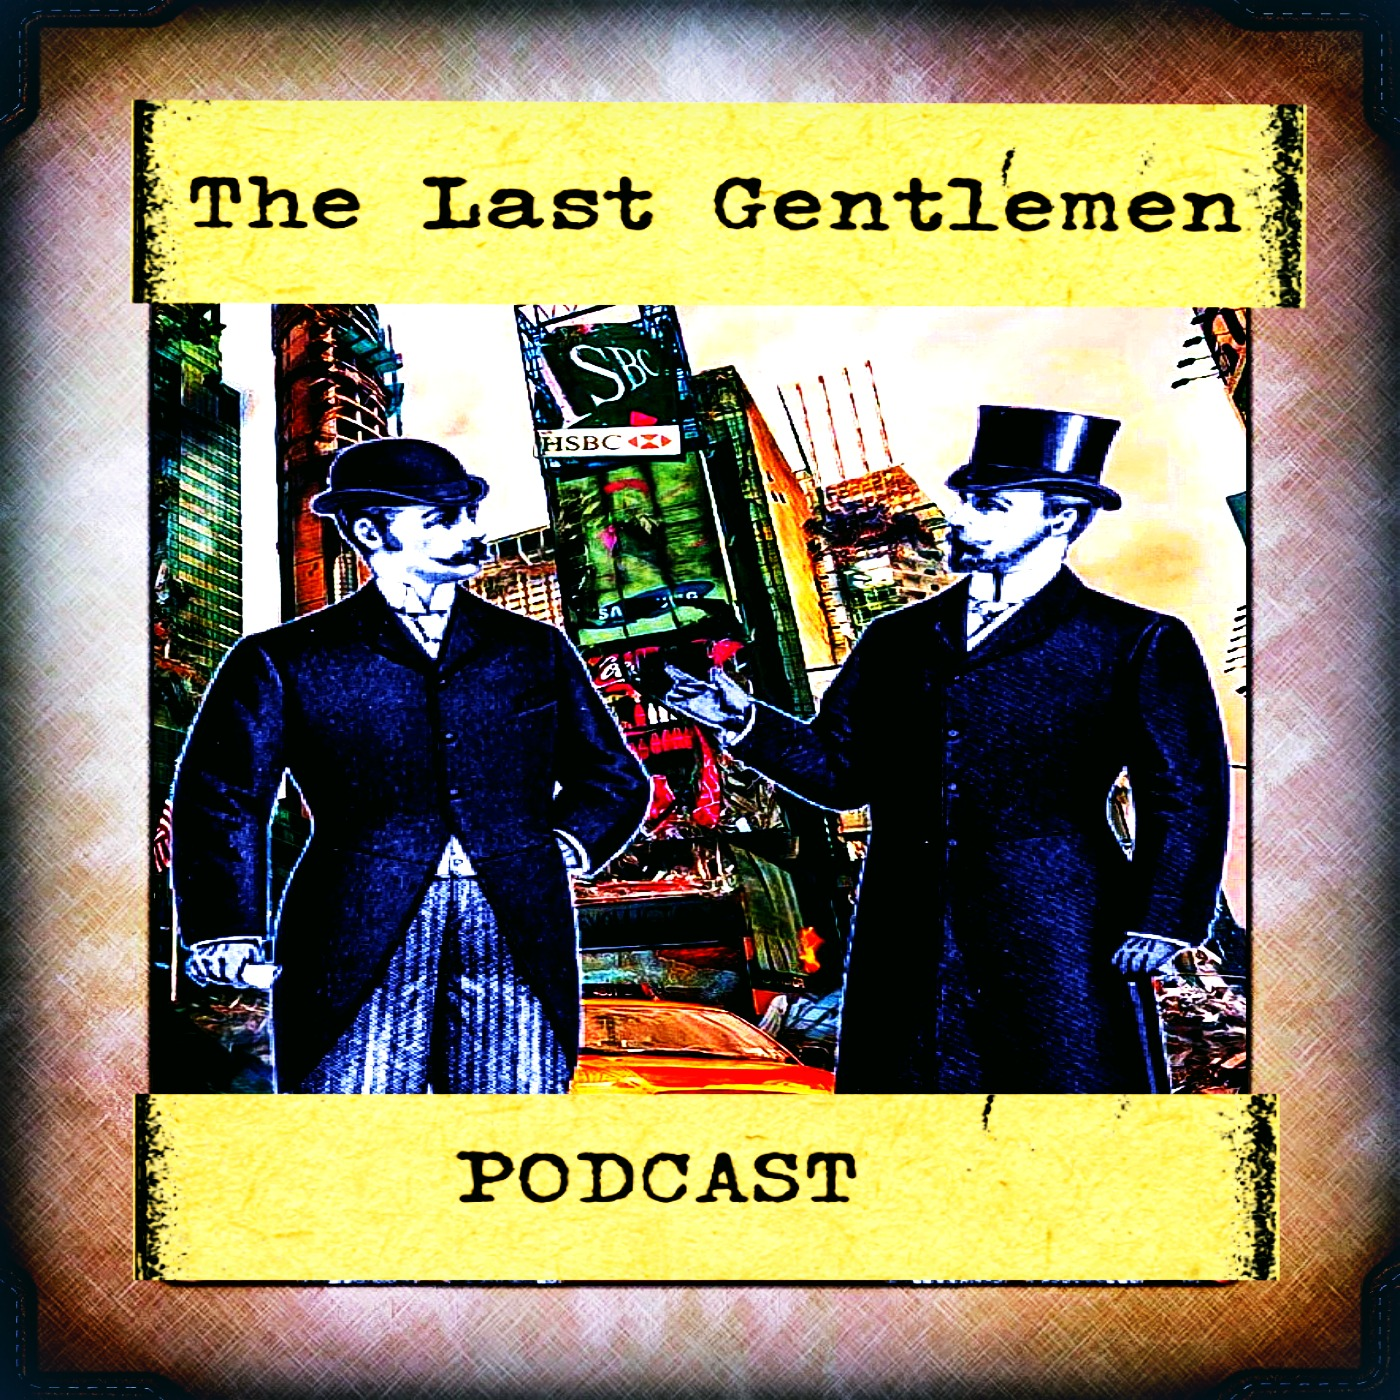 #163 The Last Gentle-Nerds